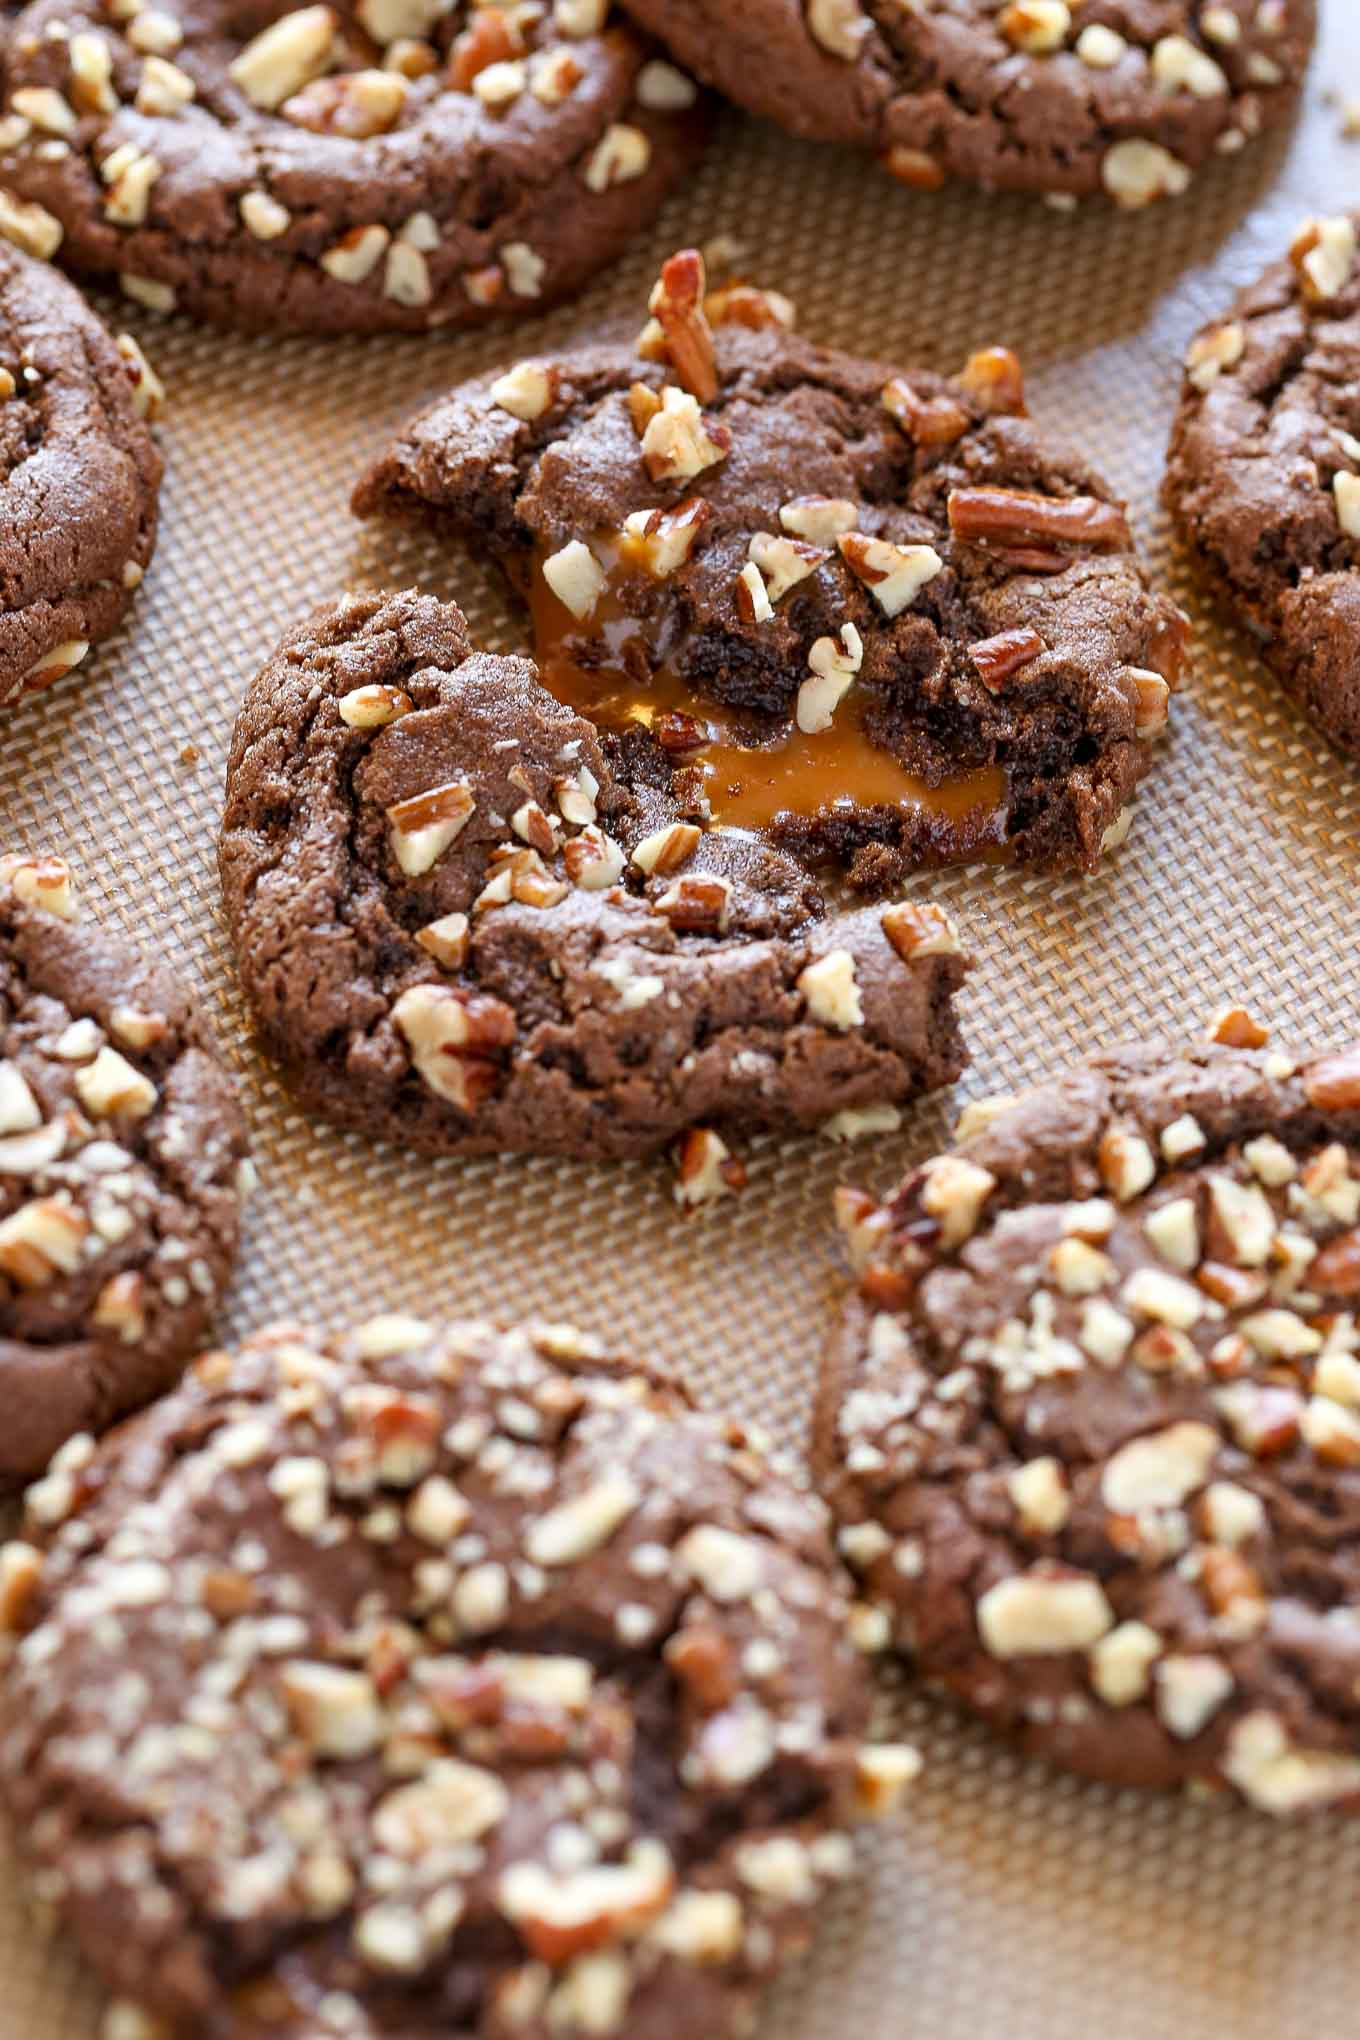 A close up view of chocolate turtle cookies on a baking sheet.